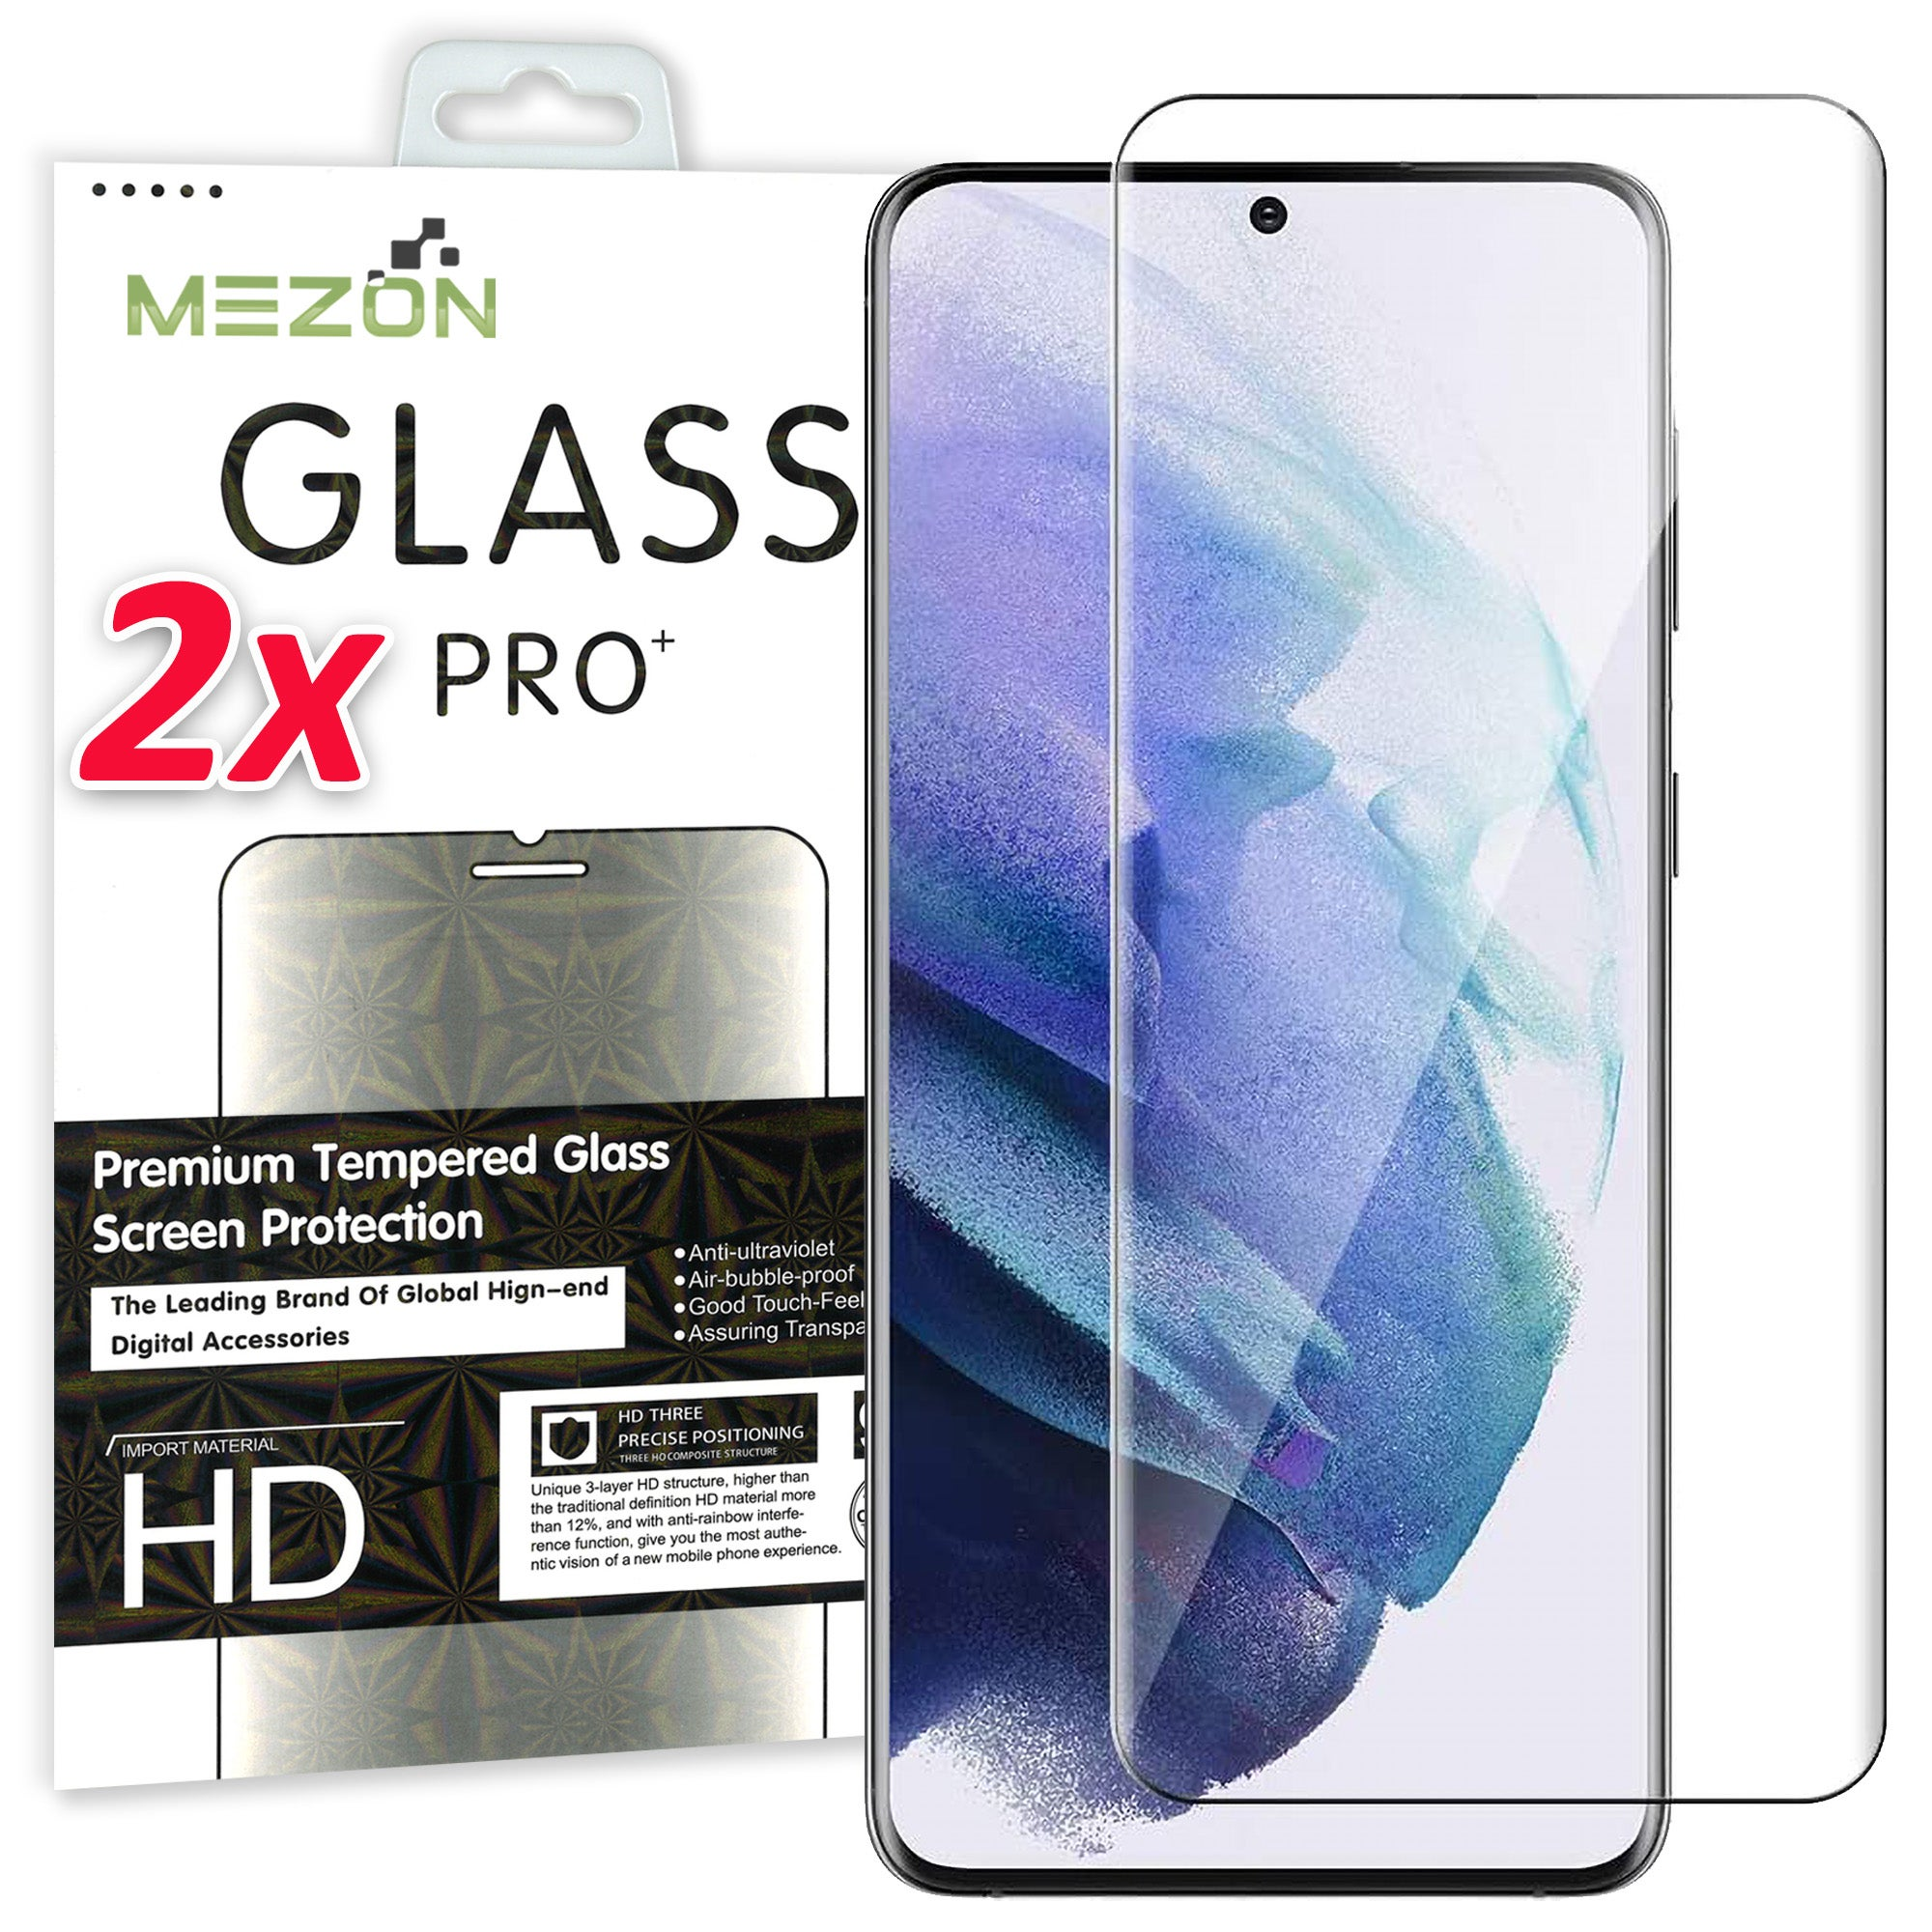 [2 Pack] Samsung Galaxy S21+ 5G Tempered Glass Crystal Clear Premium 9H HD Screen Protector by MEZON – Case Friendly, Shock Absorption (S21+, 9H)